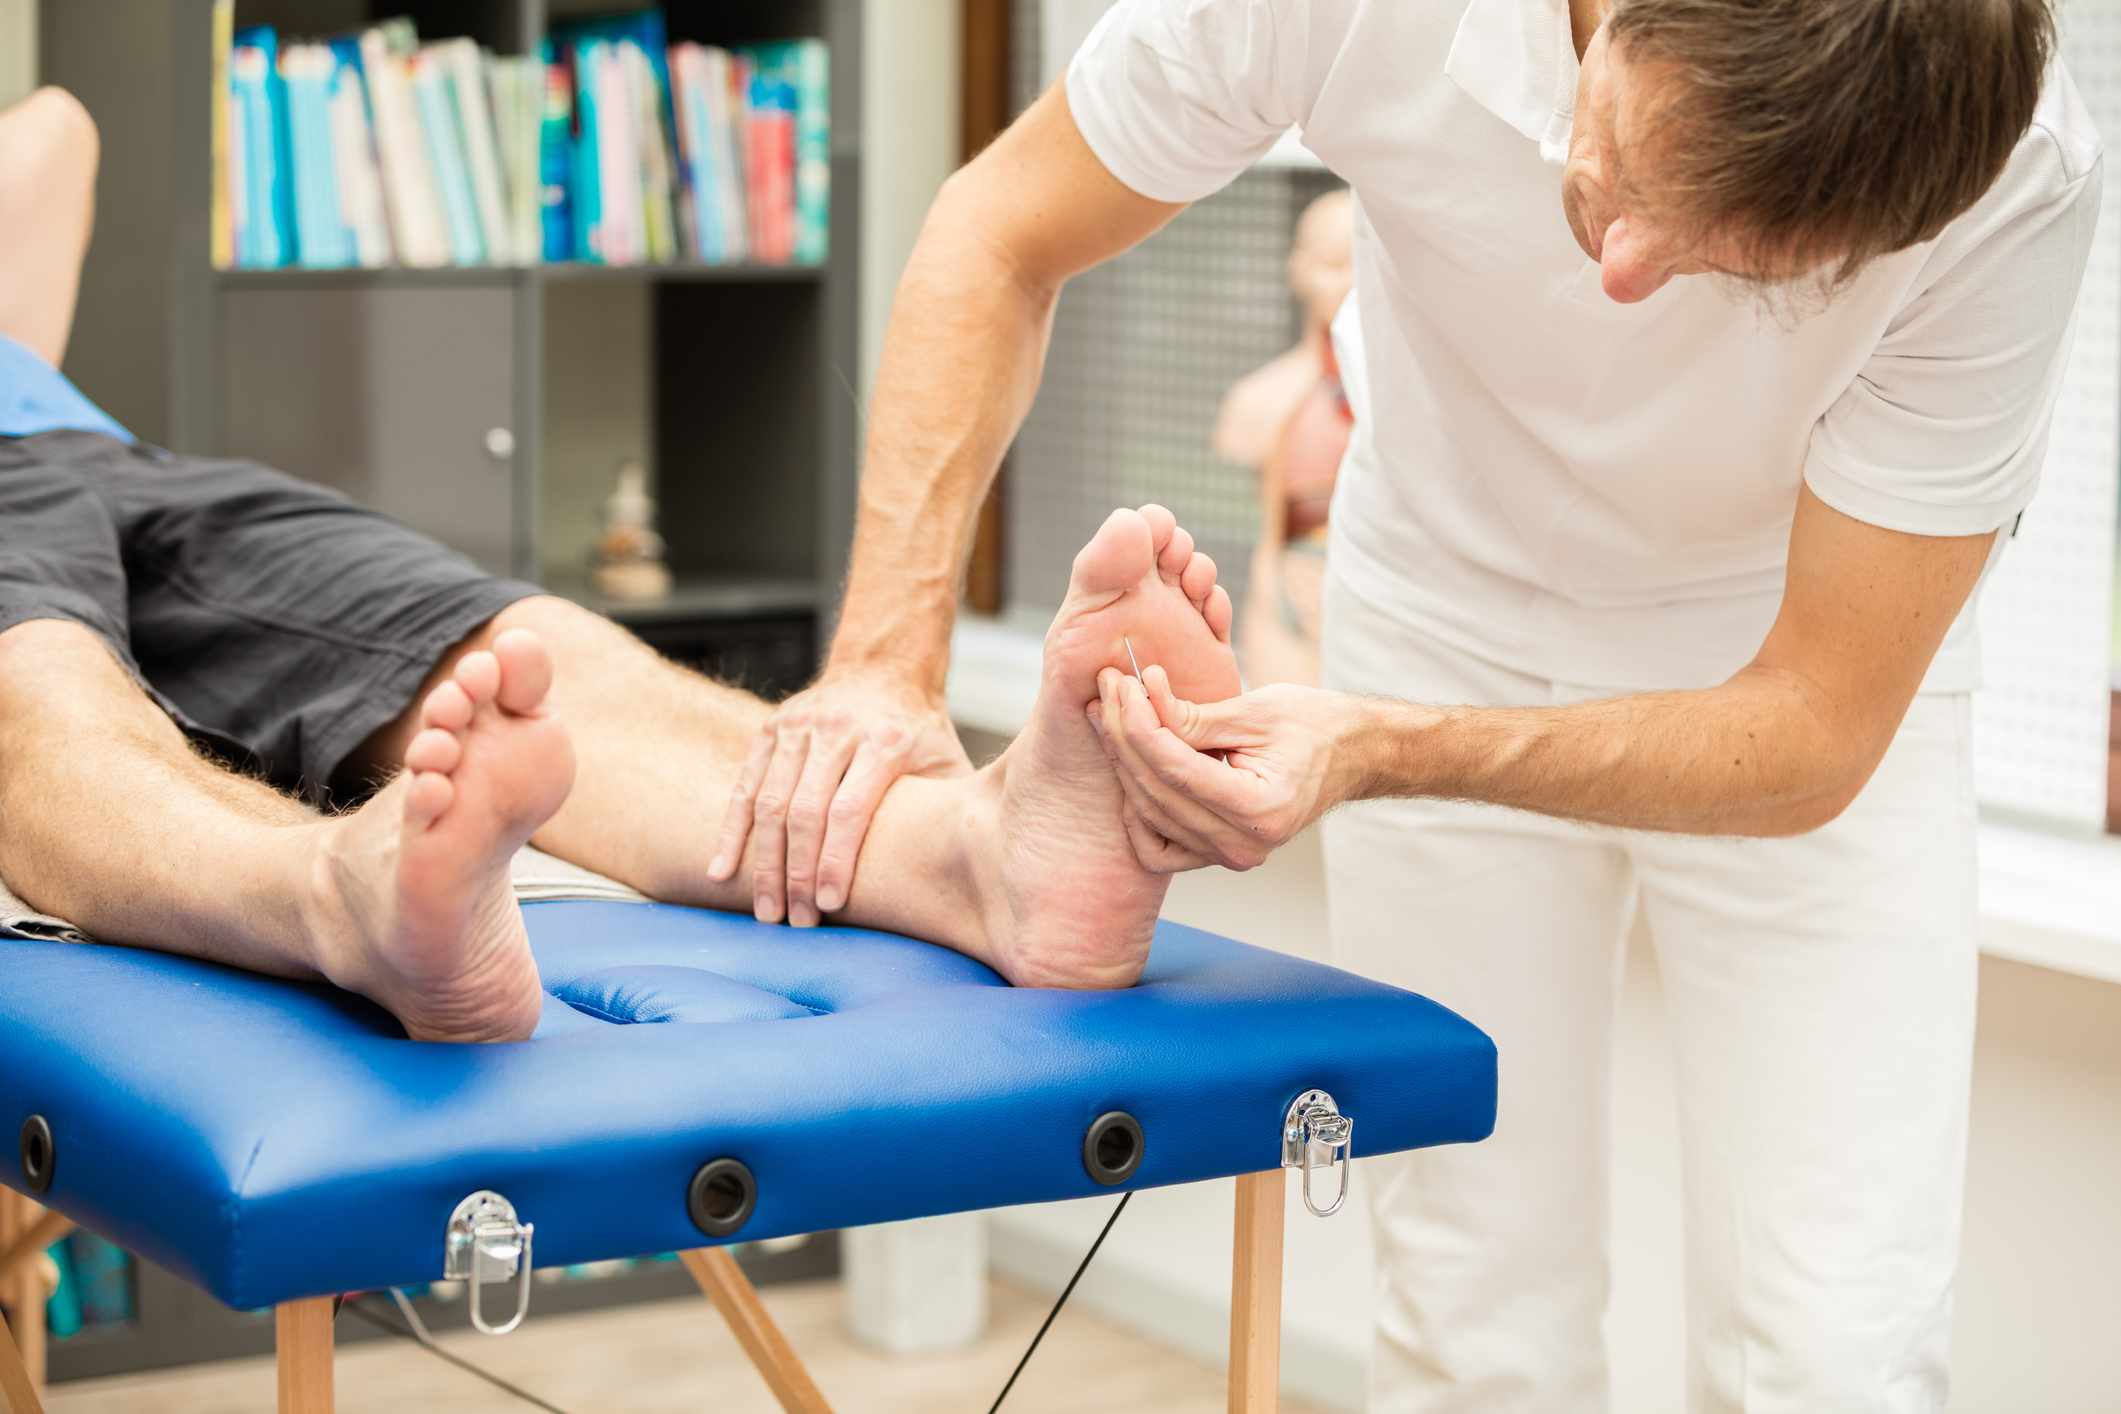 Examination for neuropathy or nerve pain.